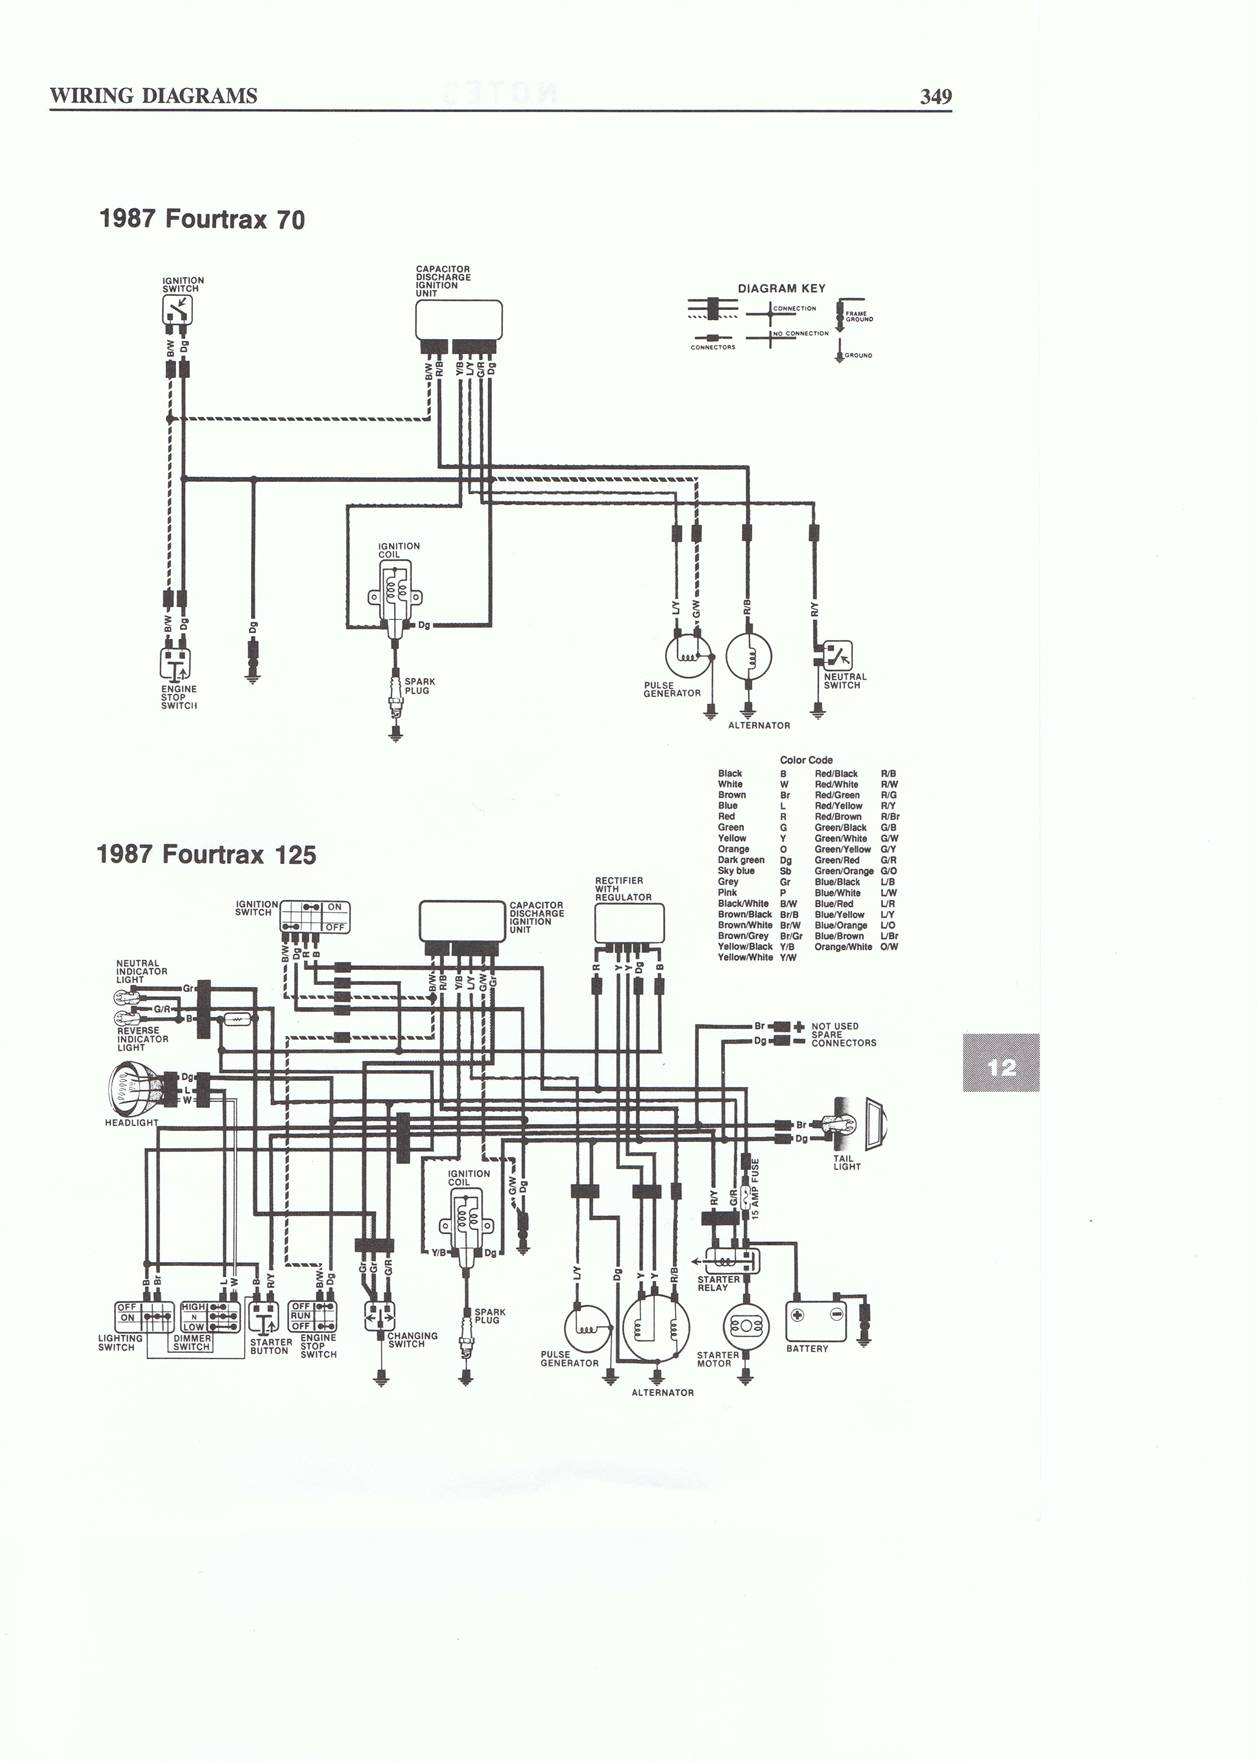 gy6 engine wiring diagram?t=1398725710 gy6 engine wiring diagram  at honlapkeszites.co